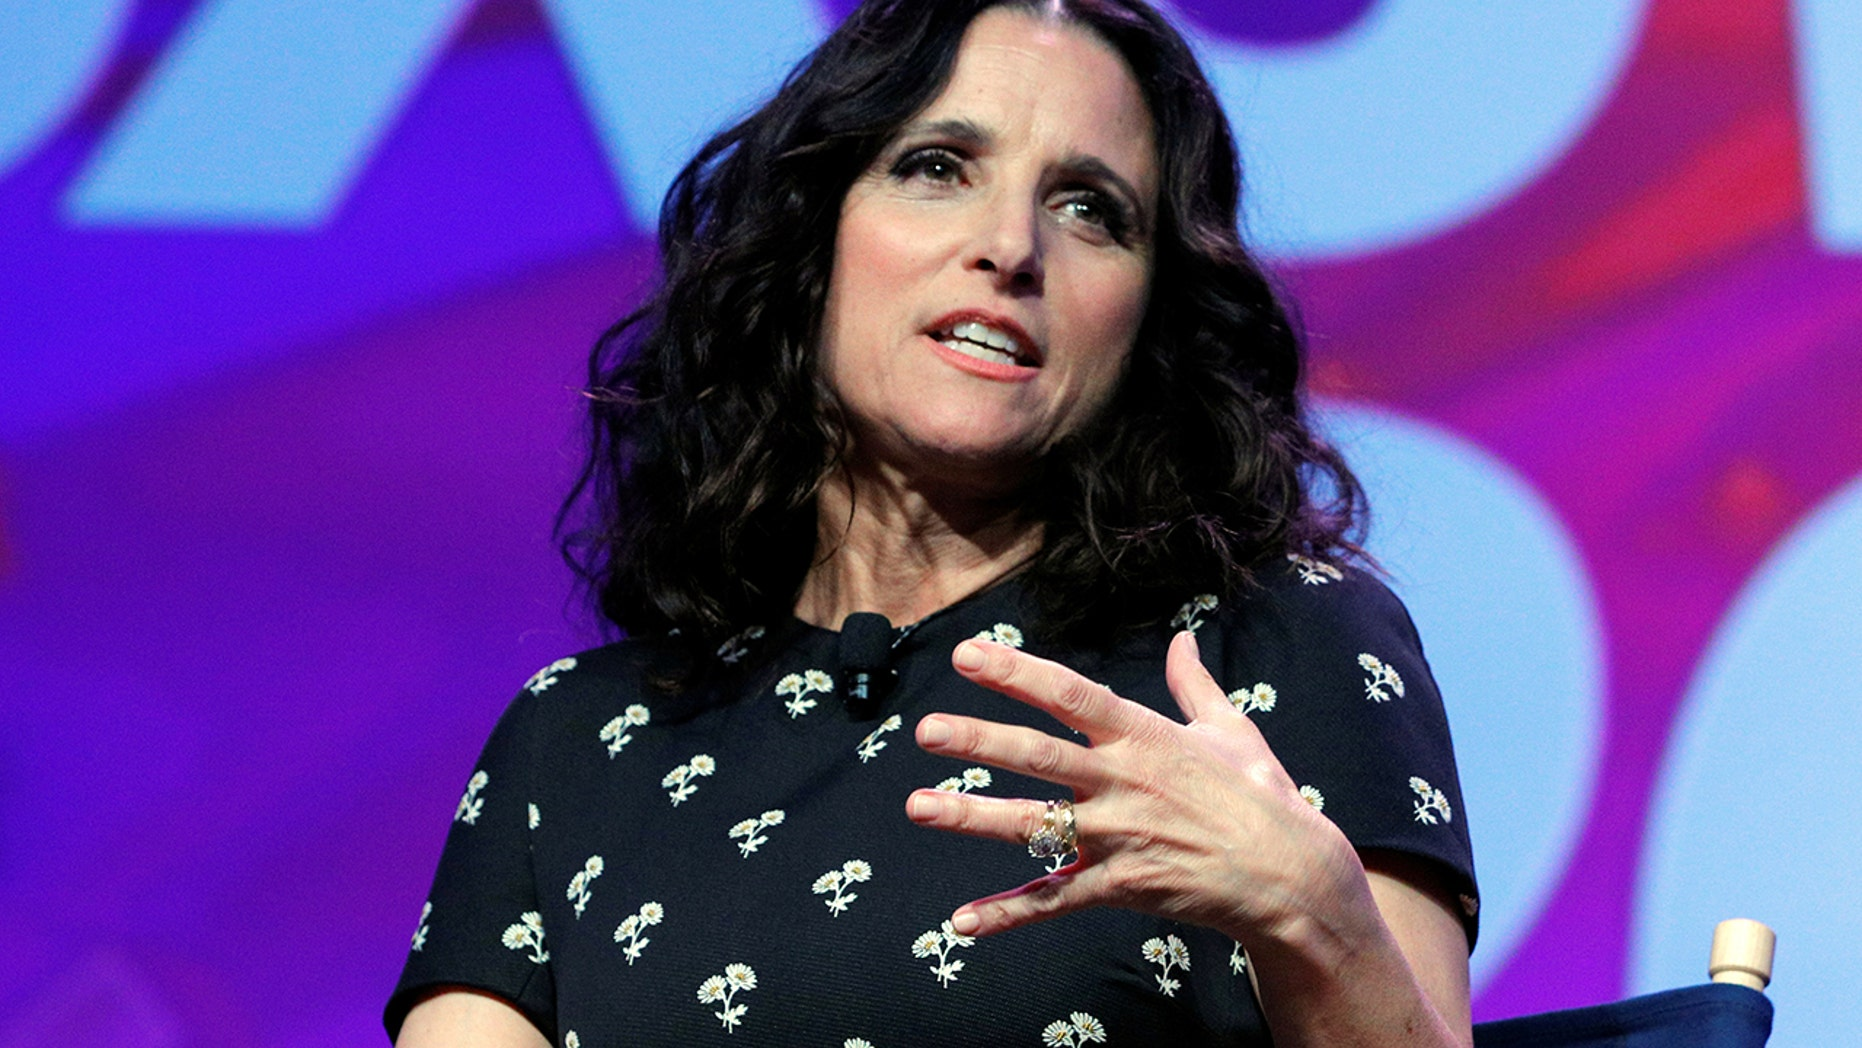 Julia Louis-Dreyfus never considered quitting 'Veep', despite her cancer diagnosis